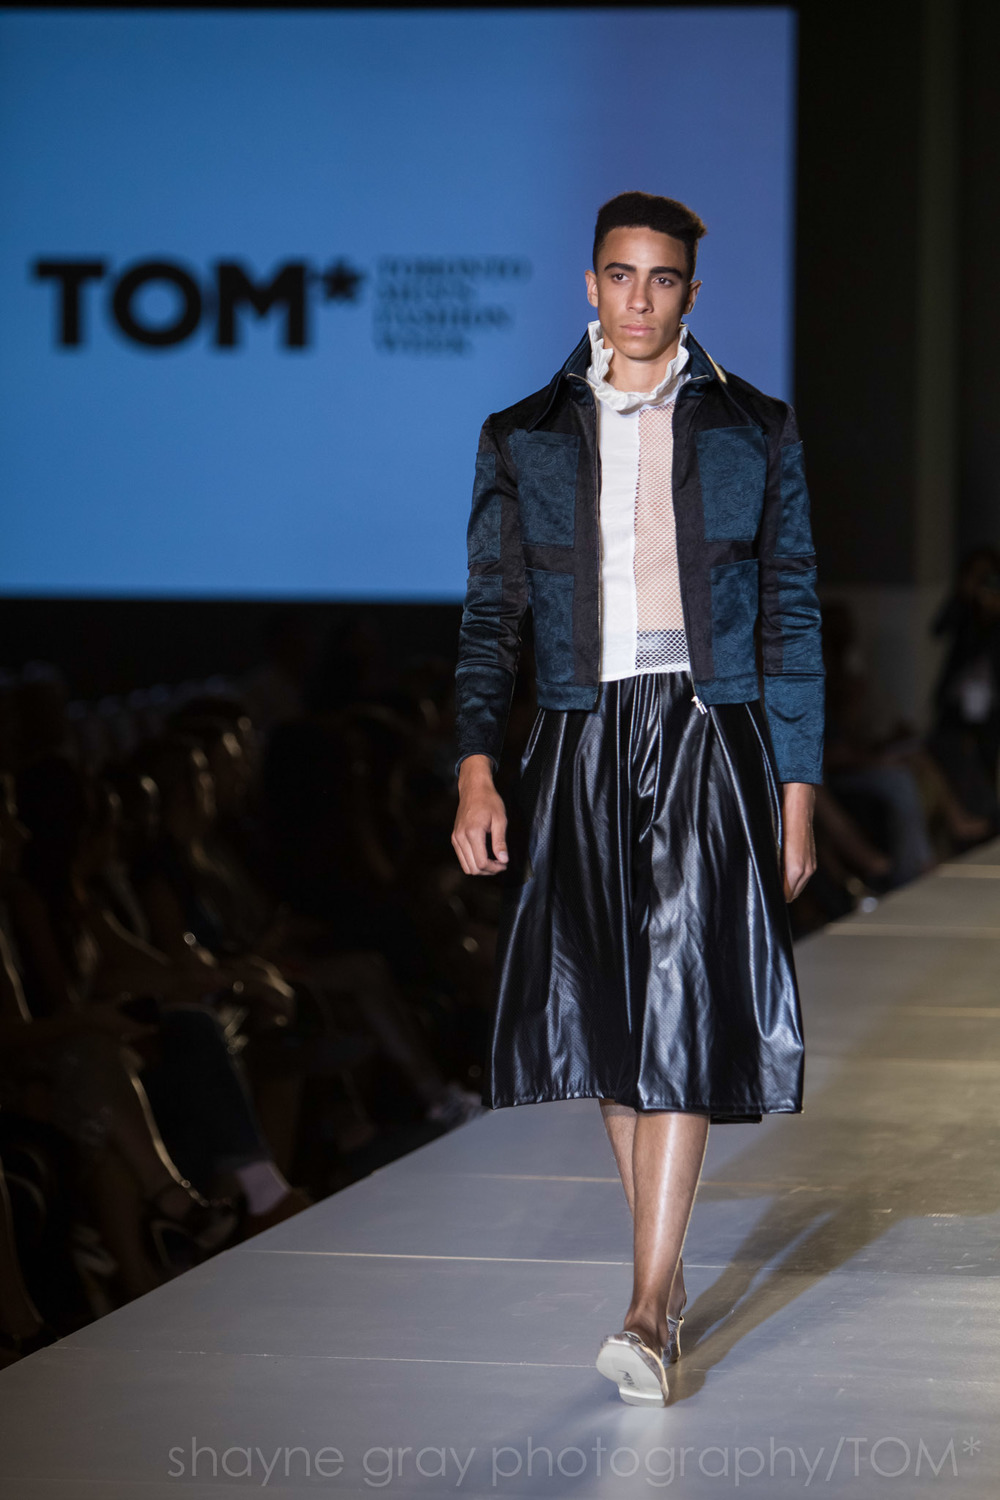 Shayne-Gray-Toronto-men's-fashion_week-TOM-l'uomo-strano-8637.jpg